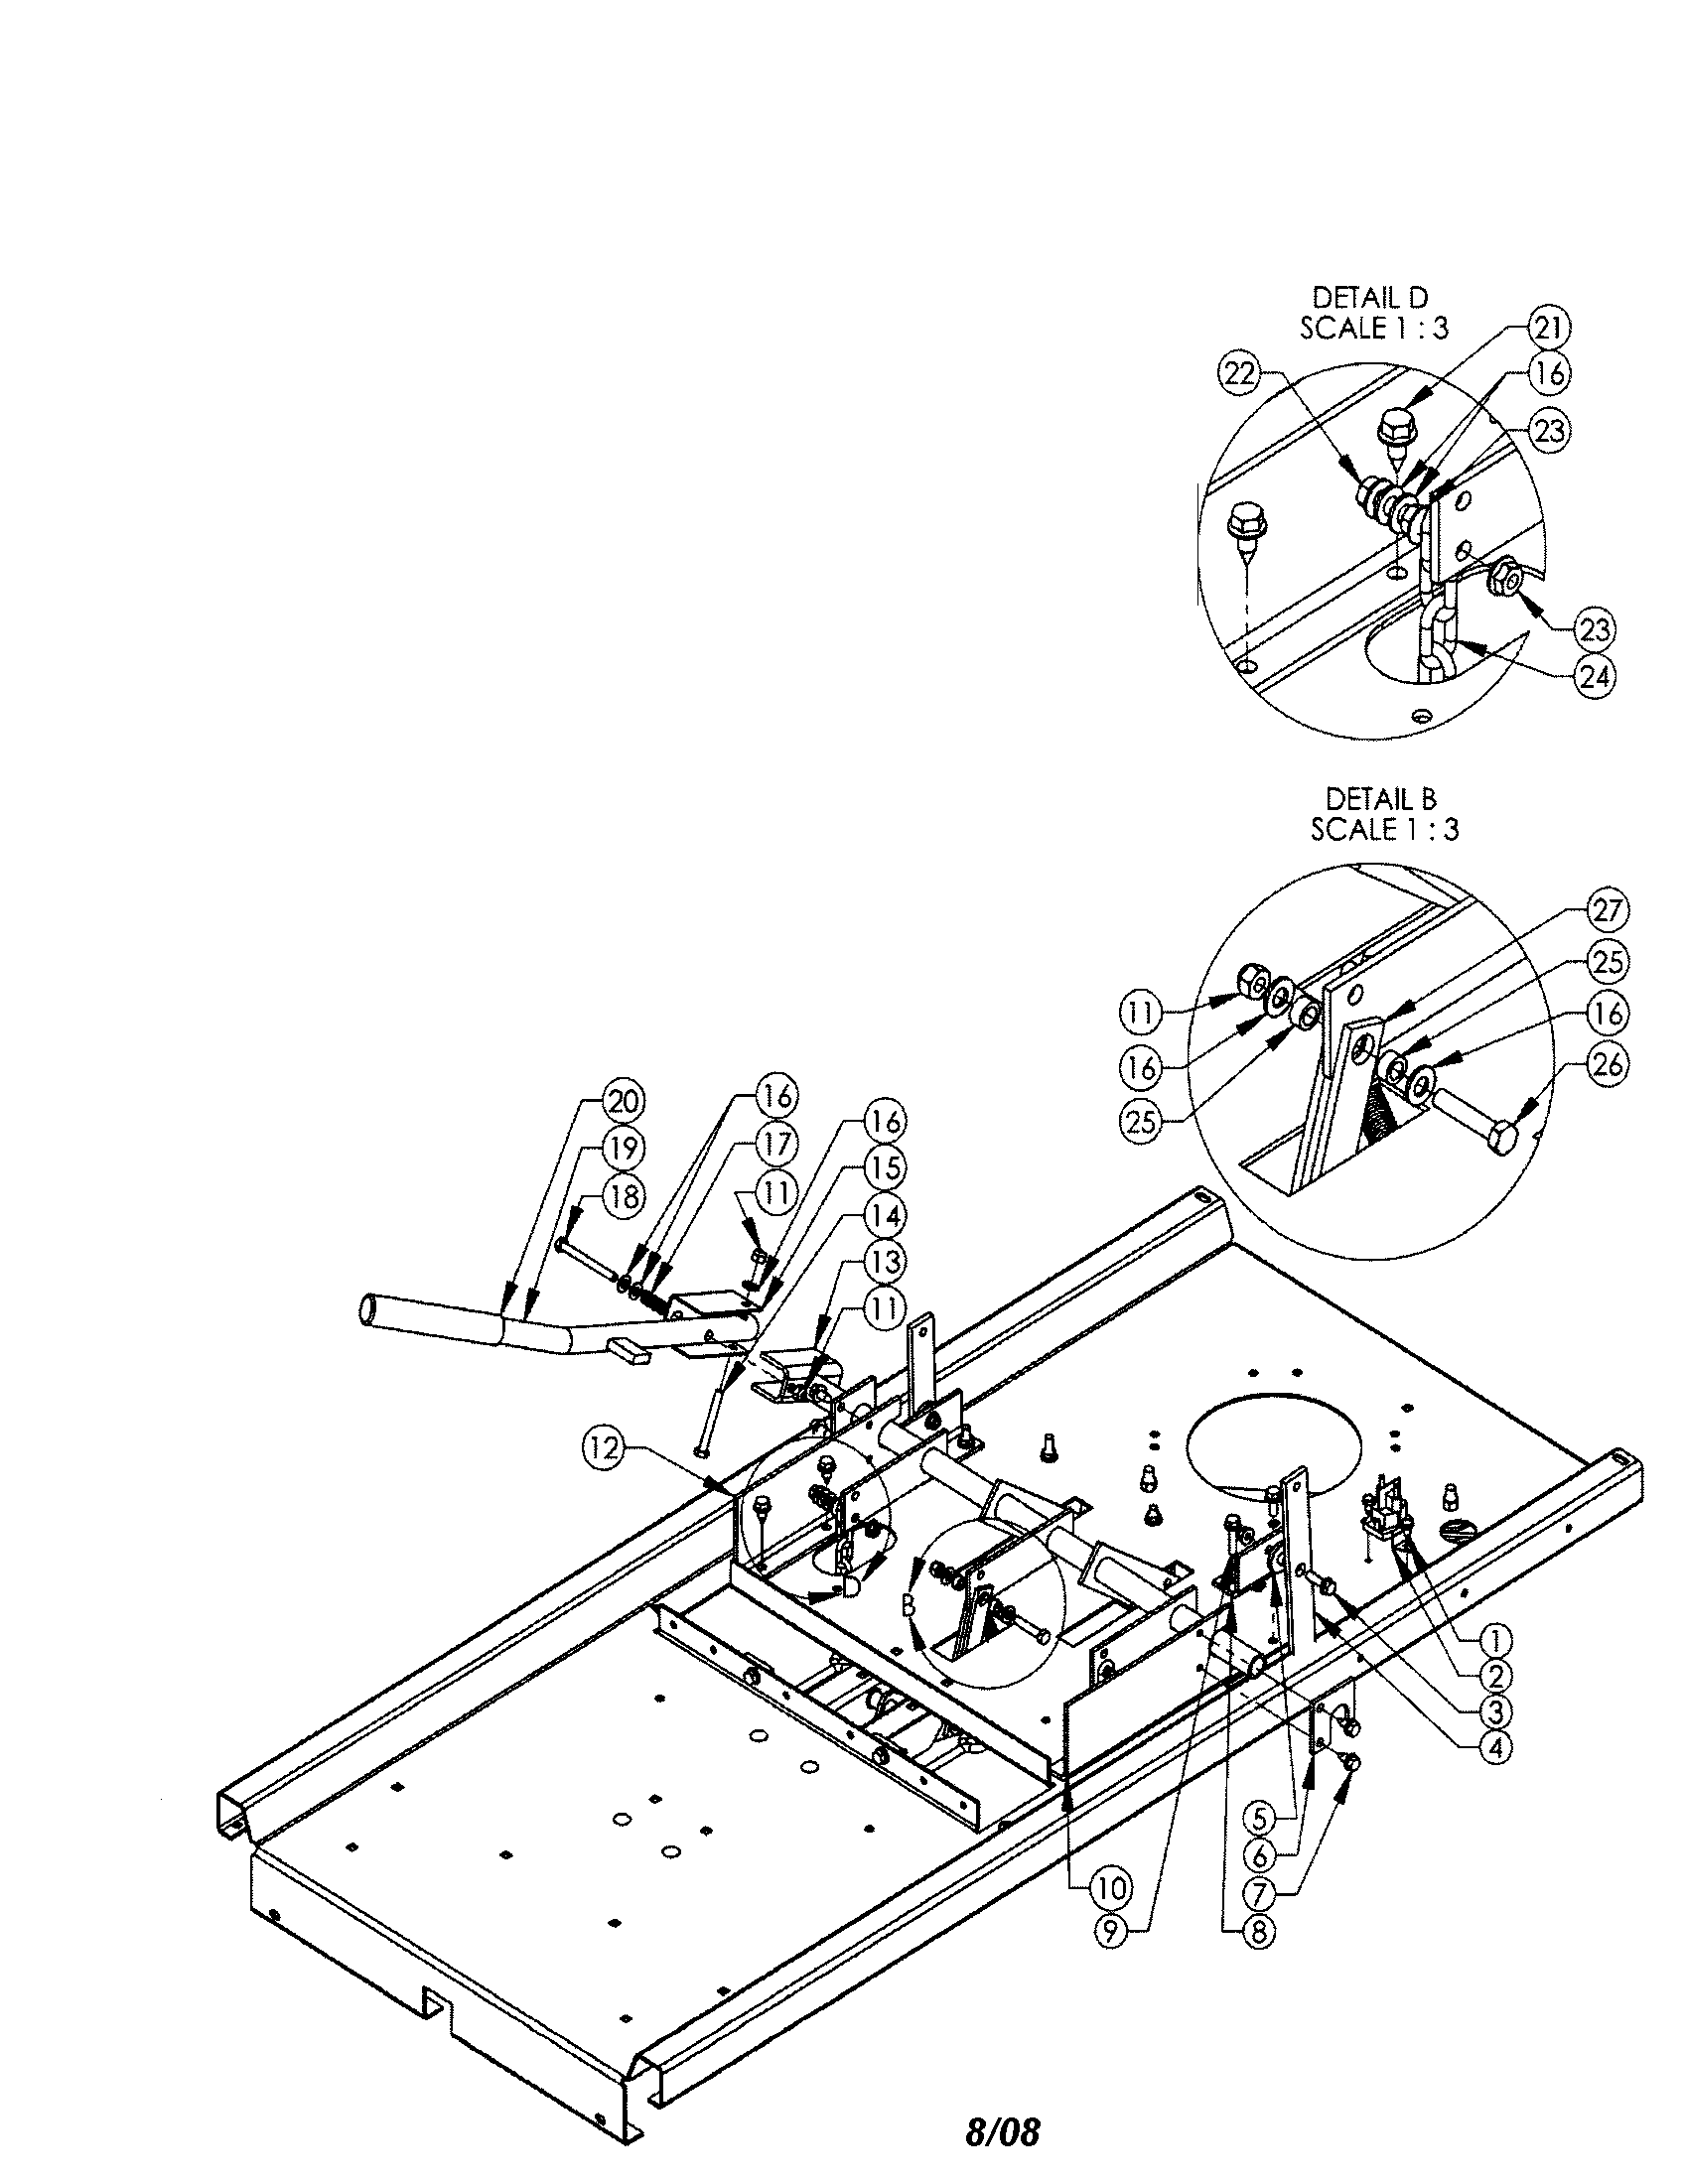 related with wiring diagram for swisher t1260